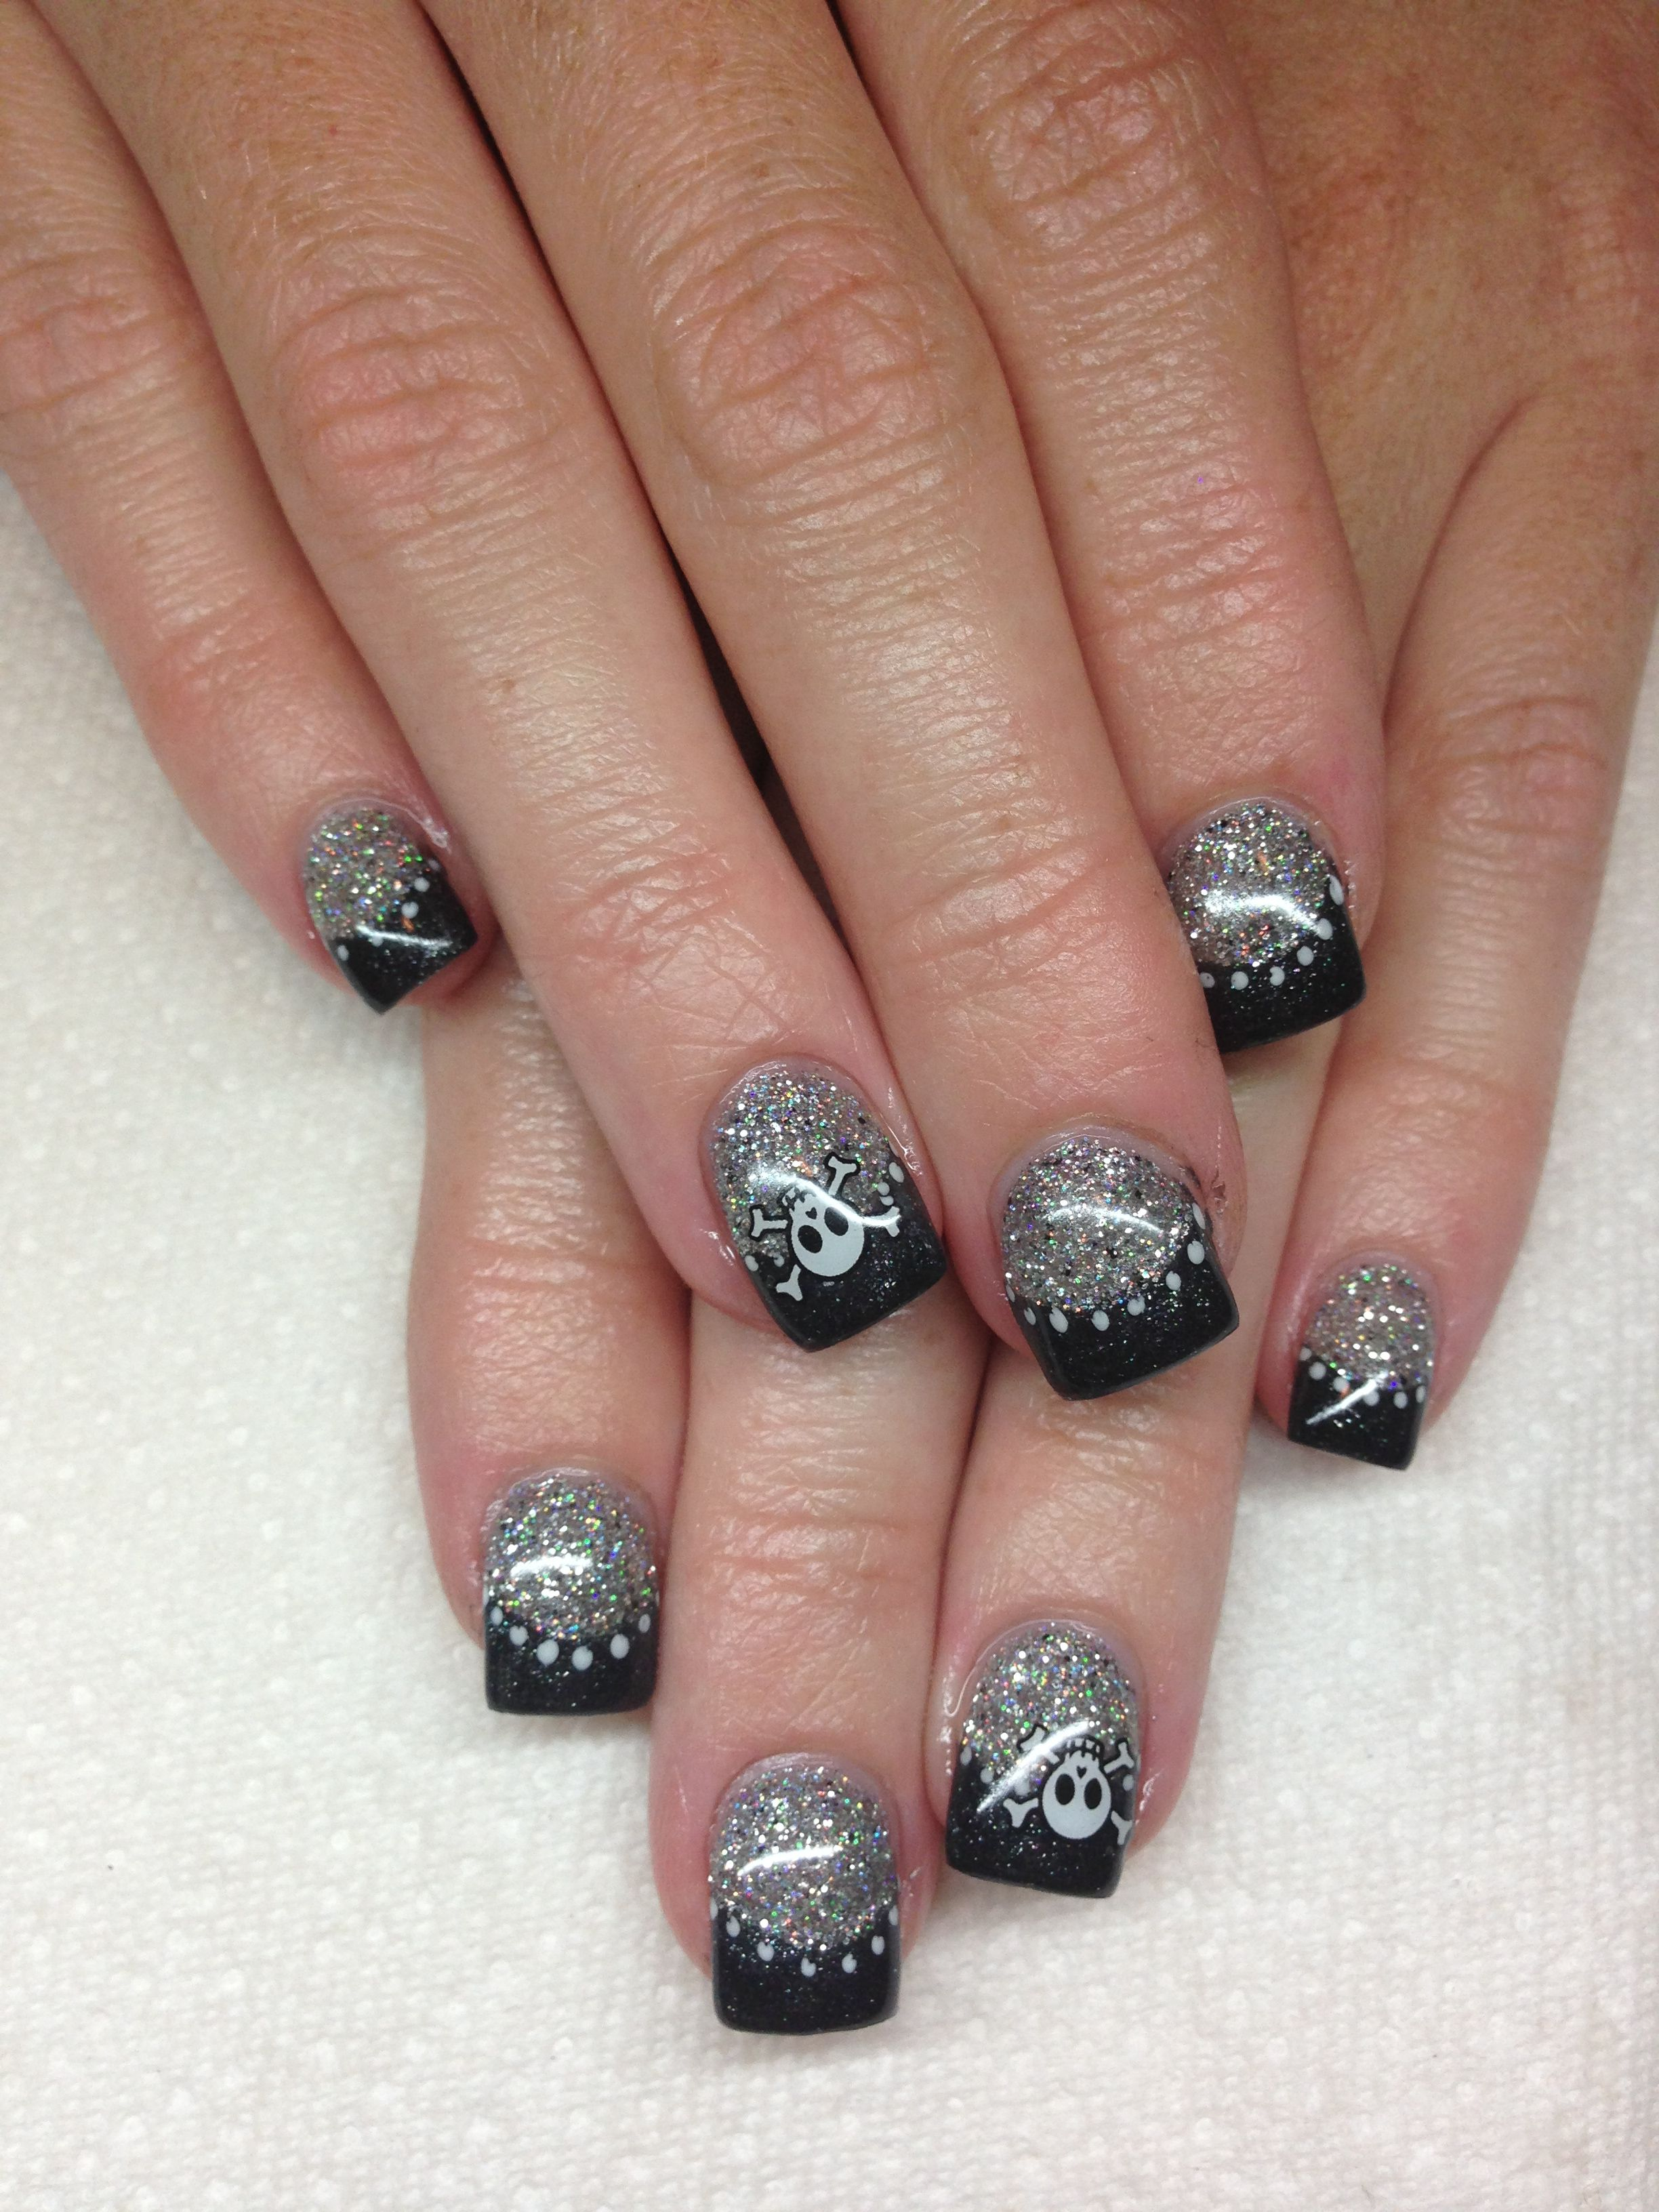 Gel Nails Silver Glitter With Black Tips Skull Design Black Nail Designs Zebra Nail Designs Gel Nail Designs